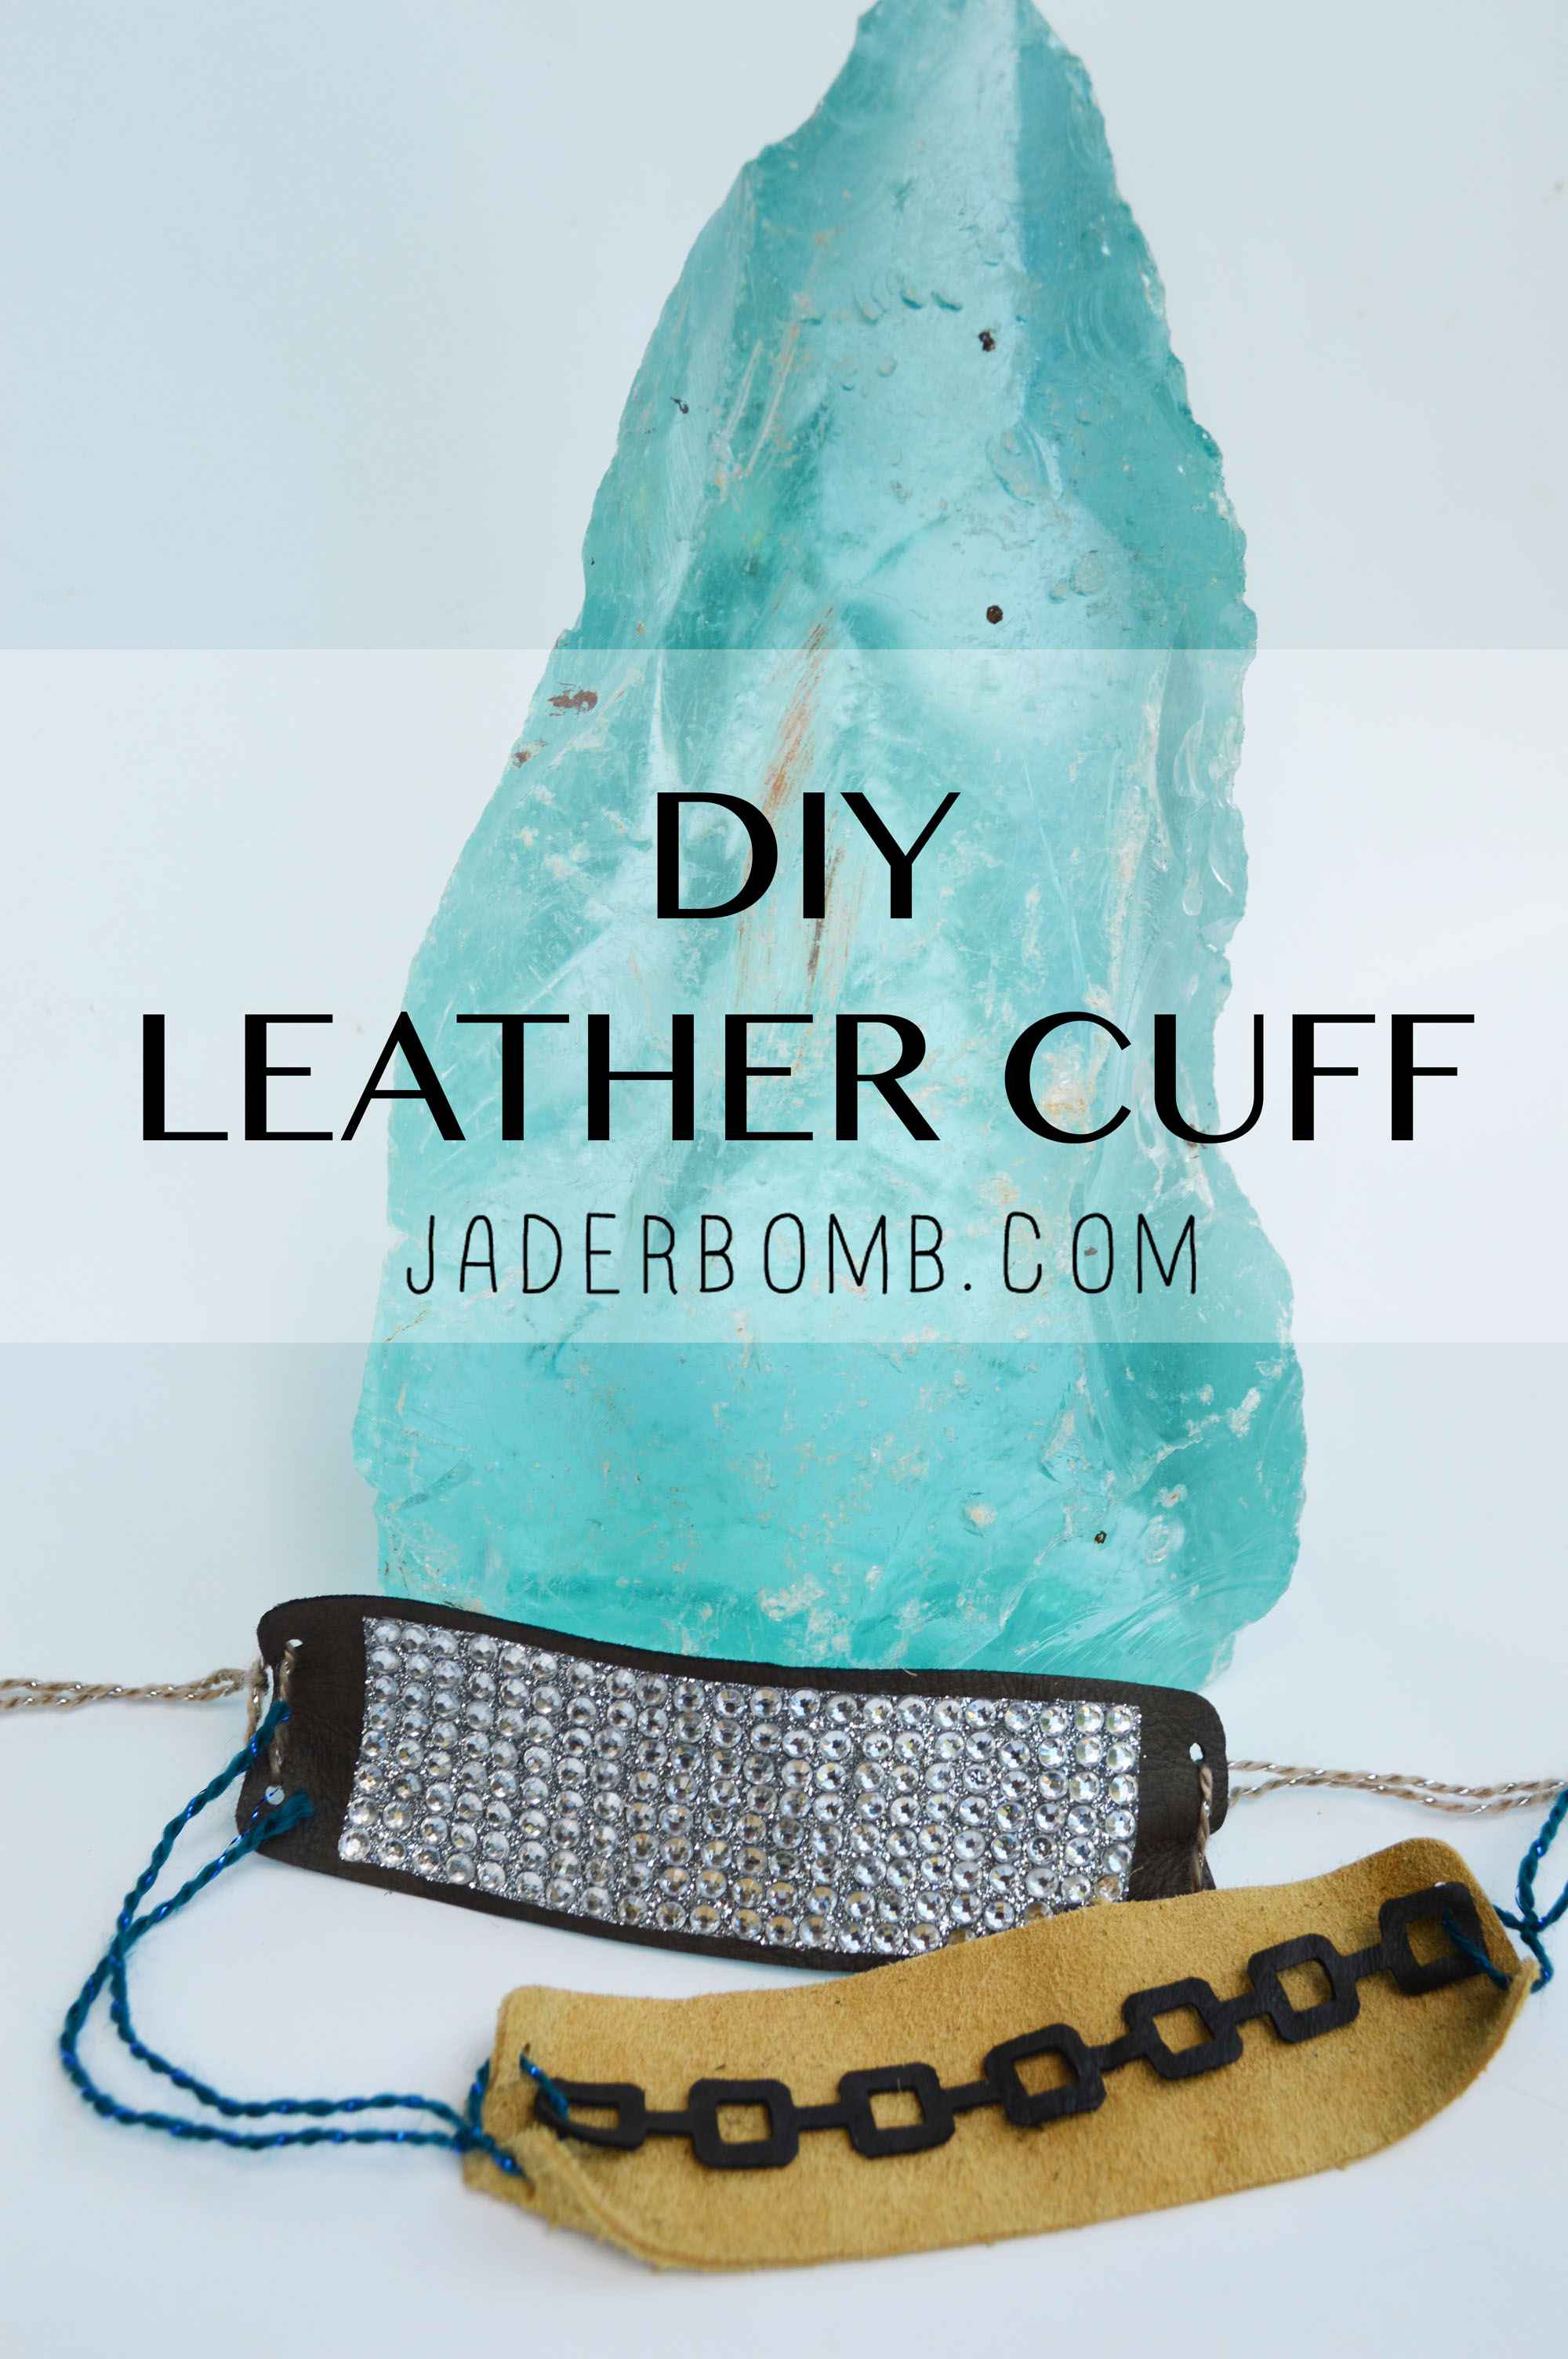 DIY Leather Cuff